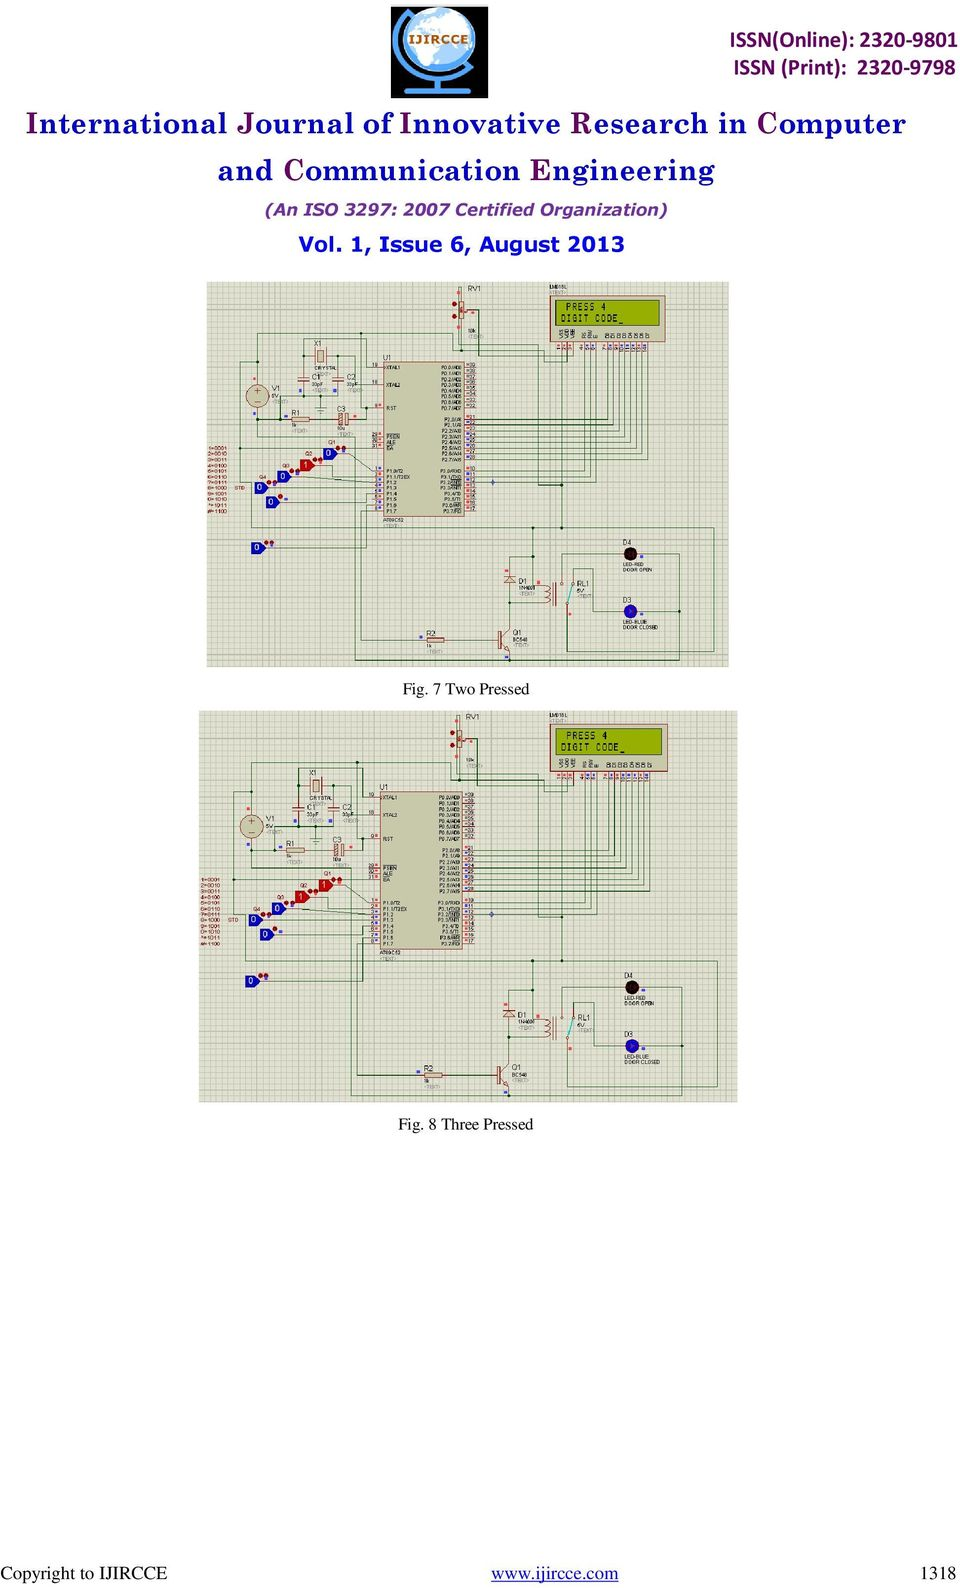 Feasibility Study Of Implementation Cell Phone Controlled Dtmf Based Robo Car Design Circuit Using 8051 Microcontroller Copyright To Ijircce